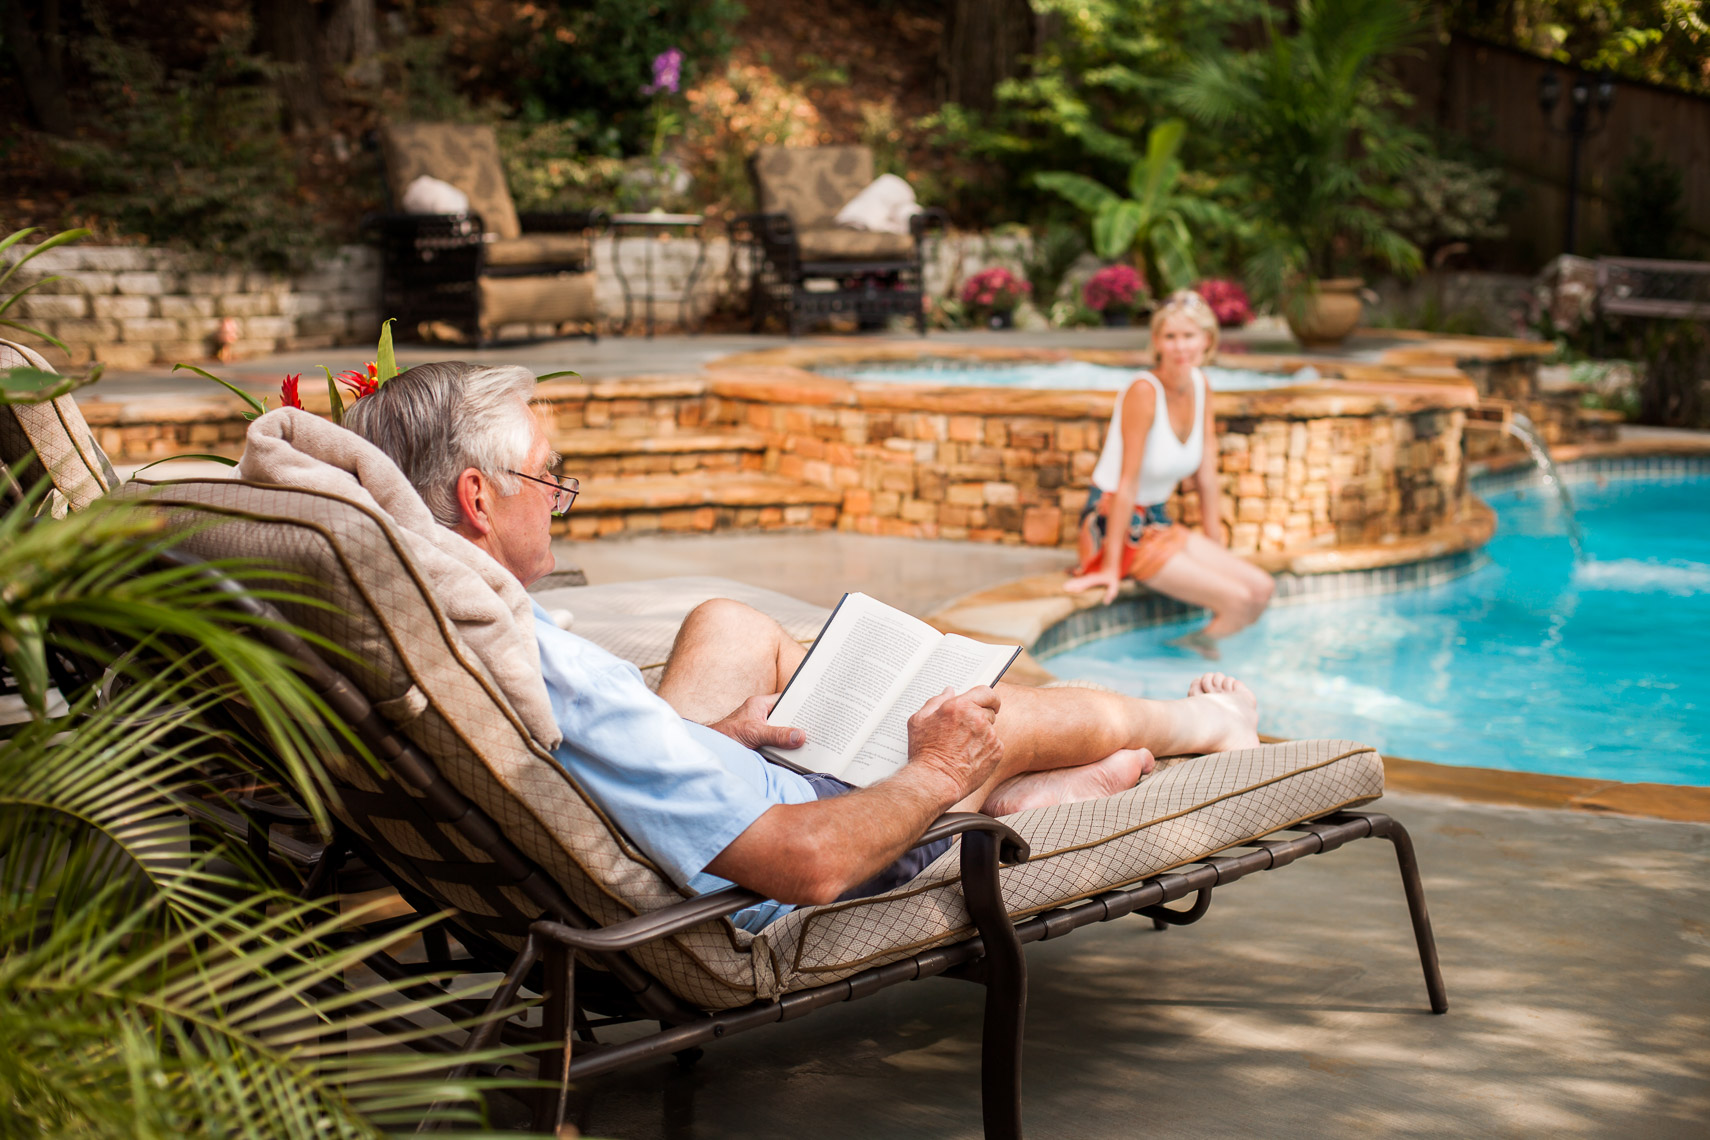 Lifestyle Photo of Older Couple at Pool